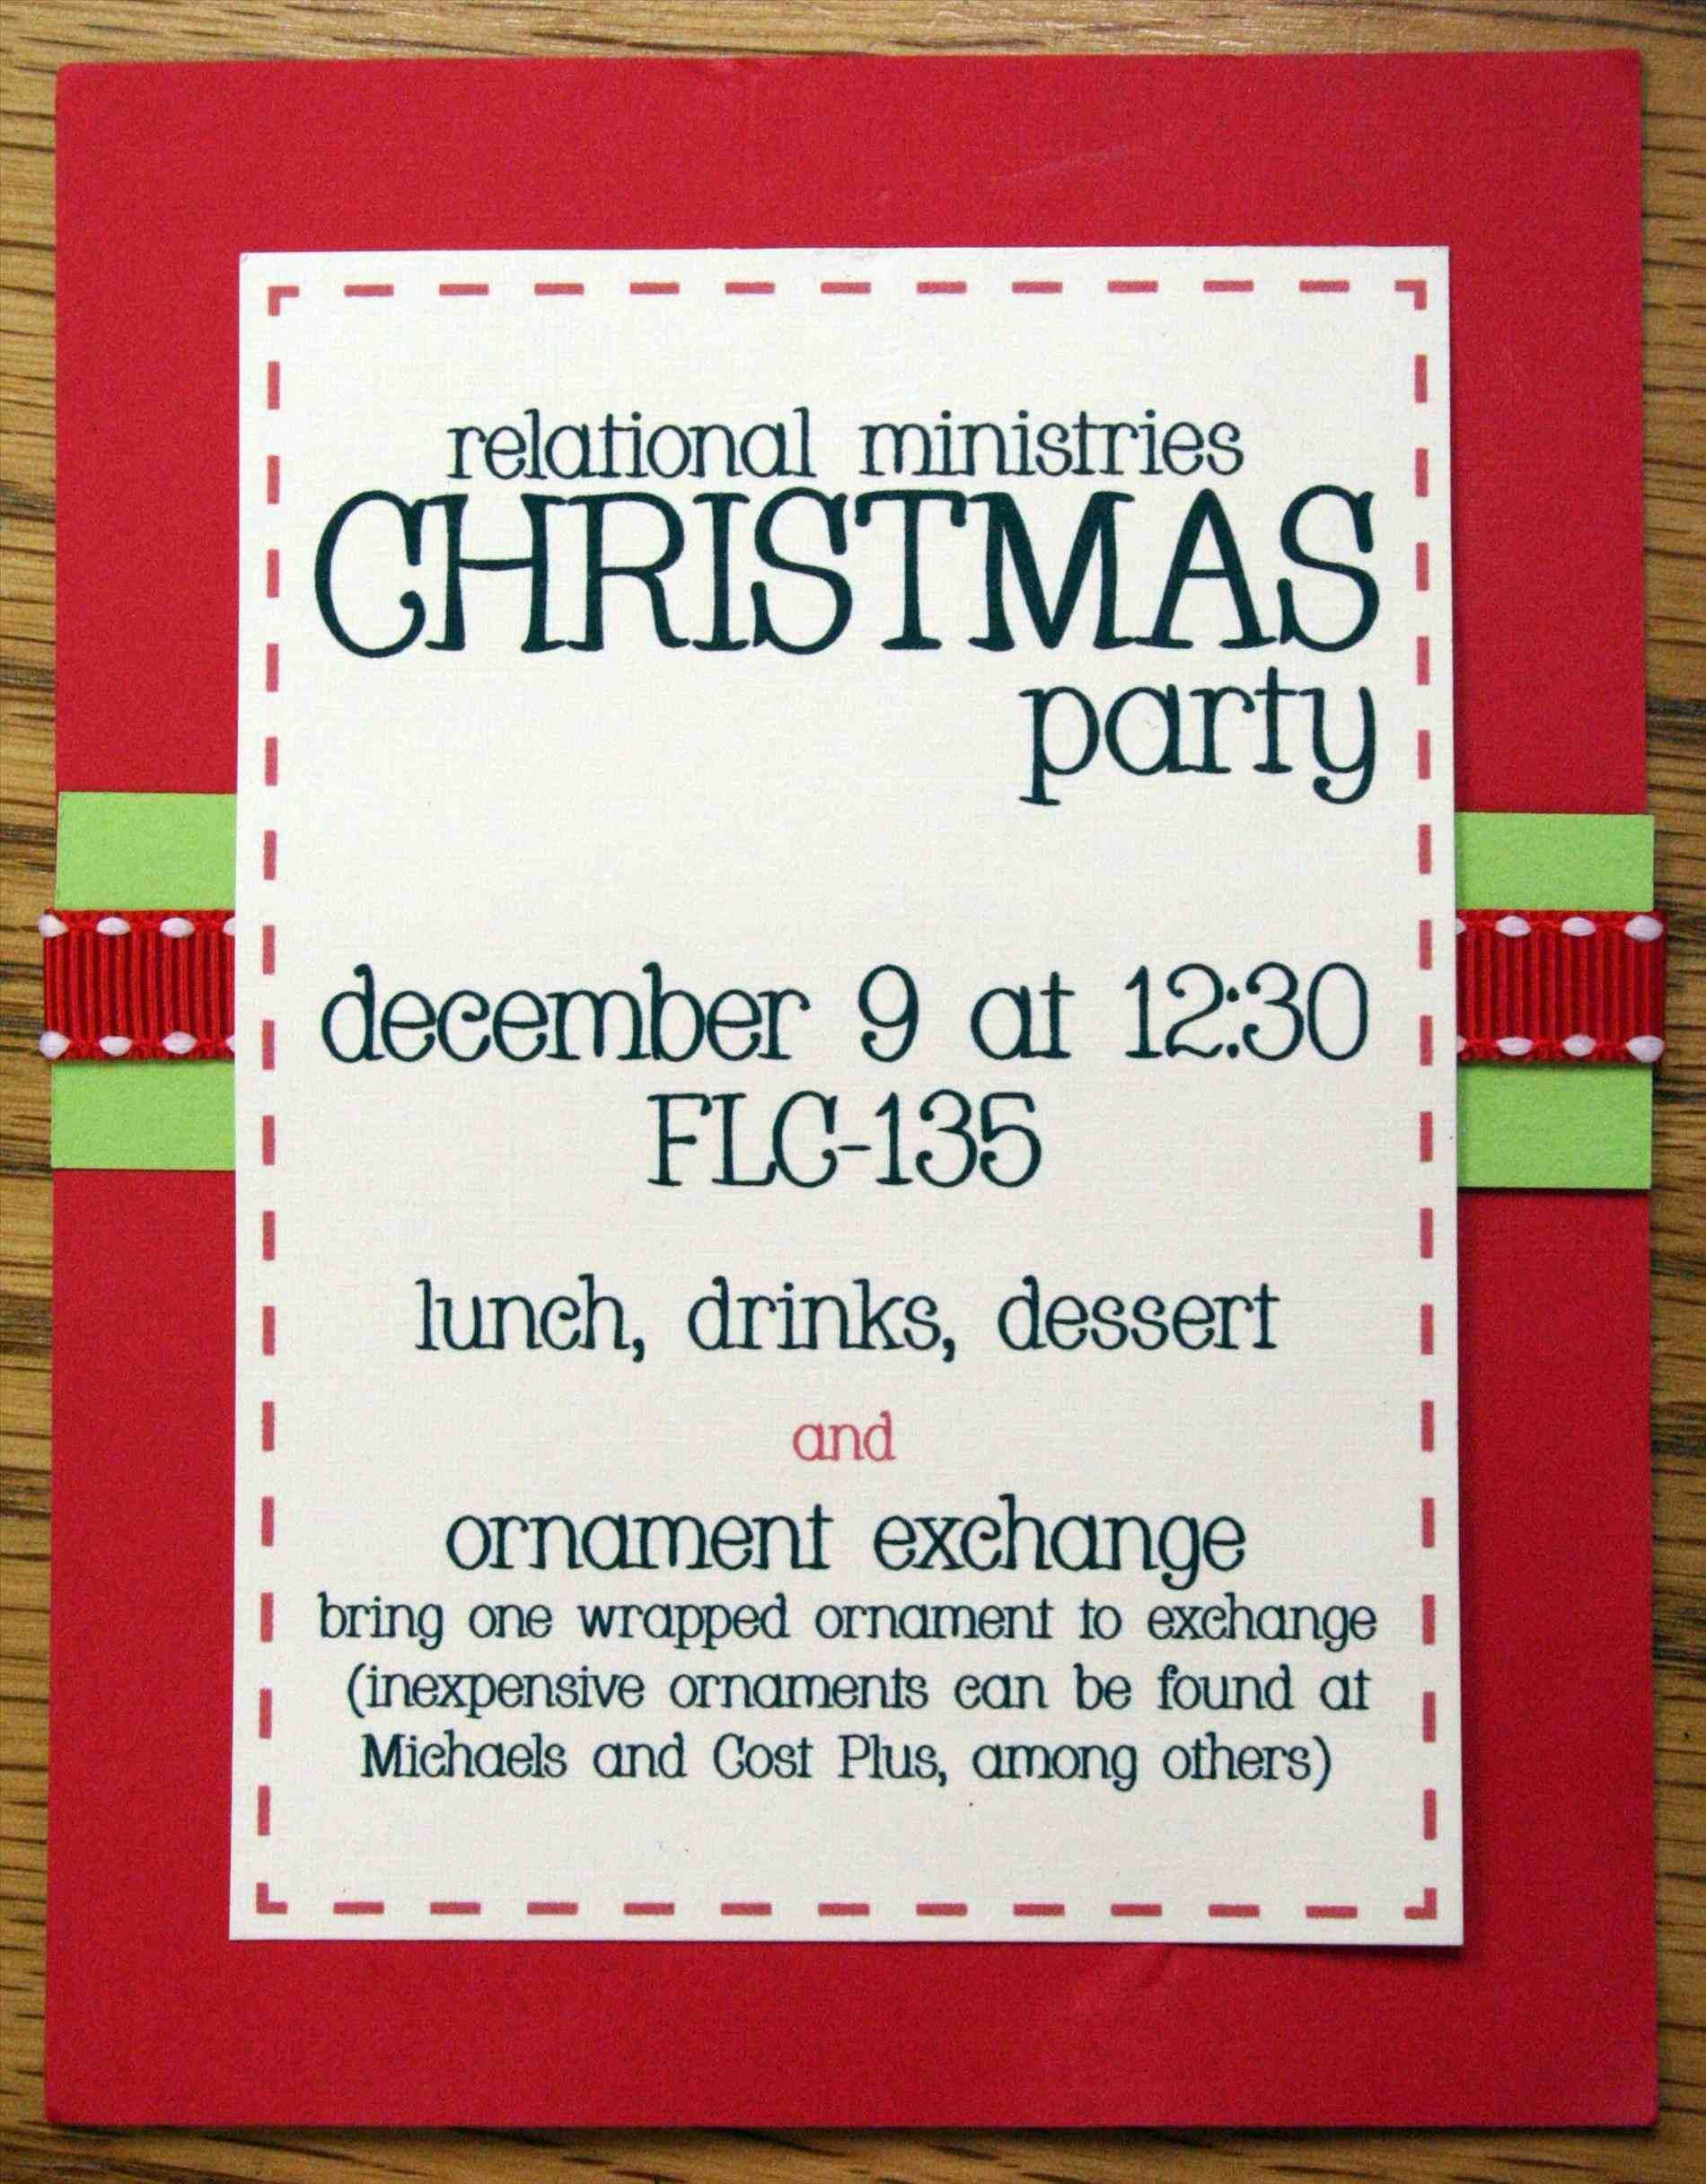 New Office Christmas Party Invitation Templates Free At Temasist Funny Christmas Party Invitations Christmas Party Invitation Wording Awesome Party Invitations